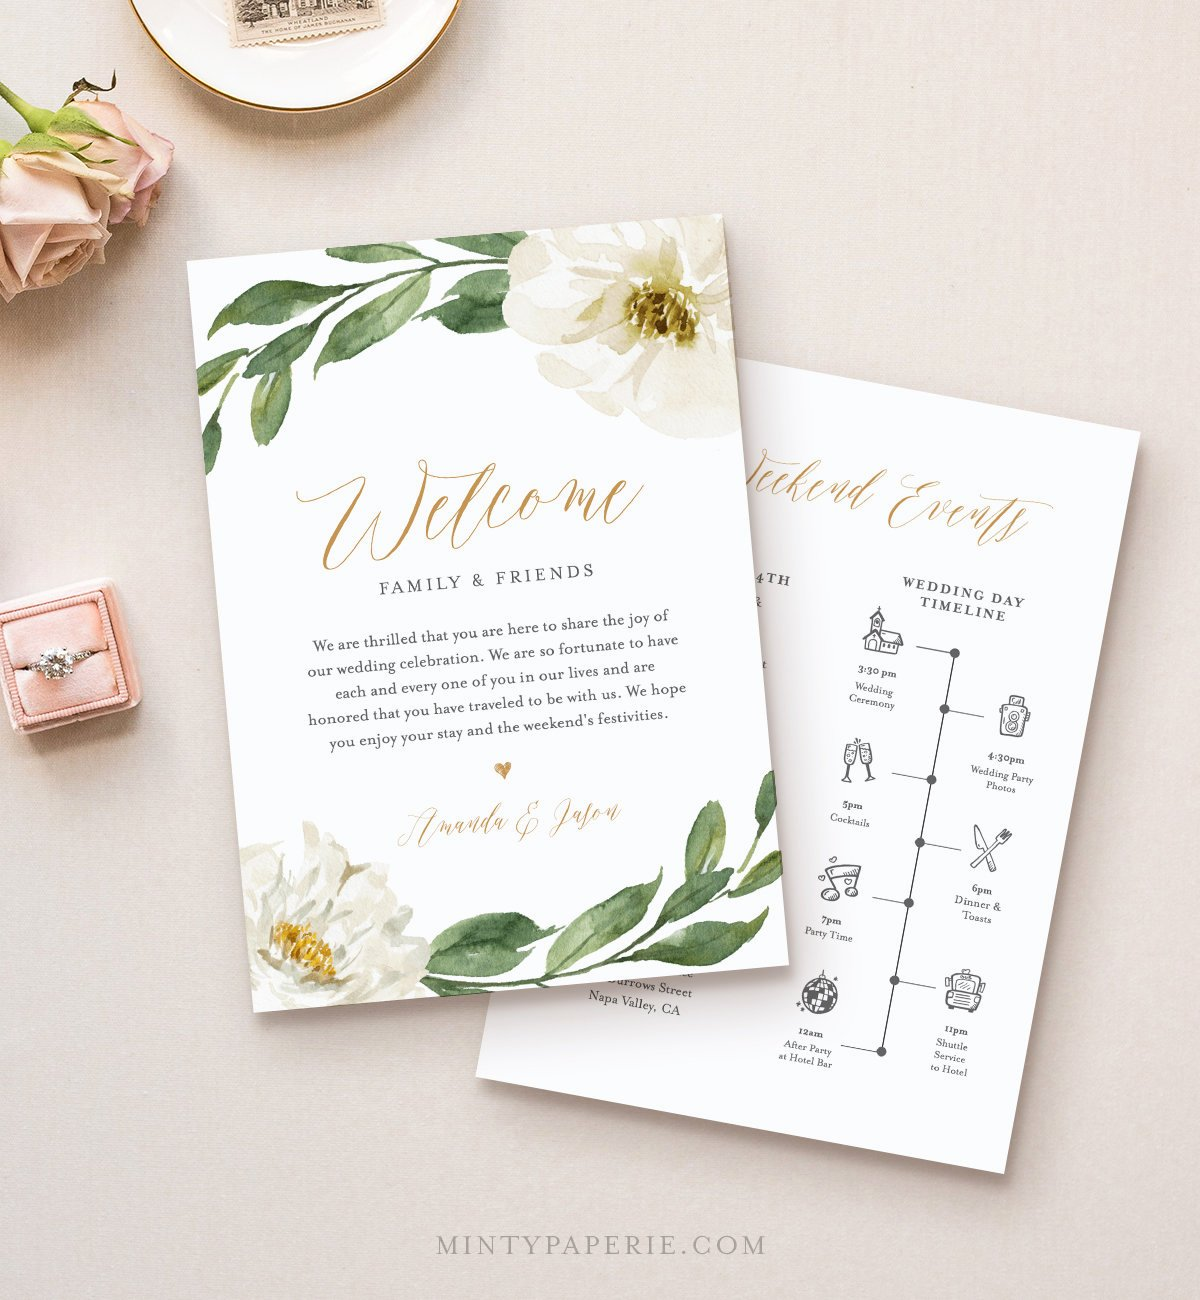 Wedding Welcome Letter Template Free Unique Timeline & Wedding Wel E Letter Template Boho Greenery